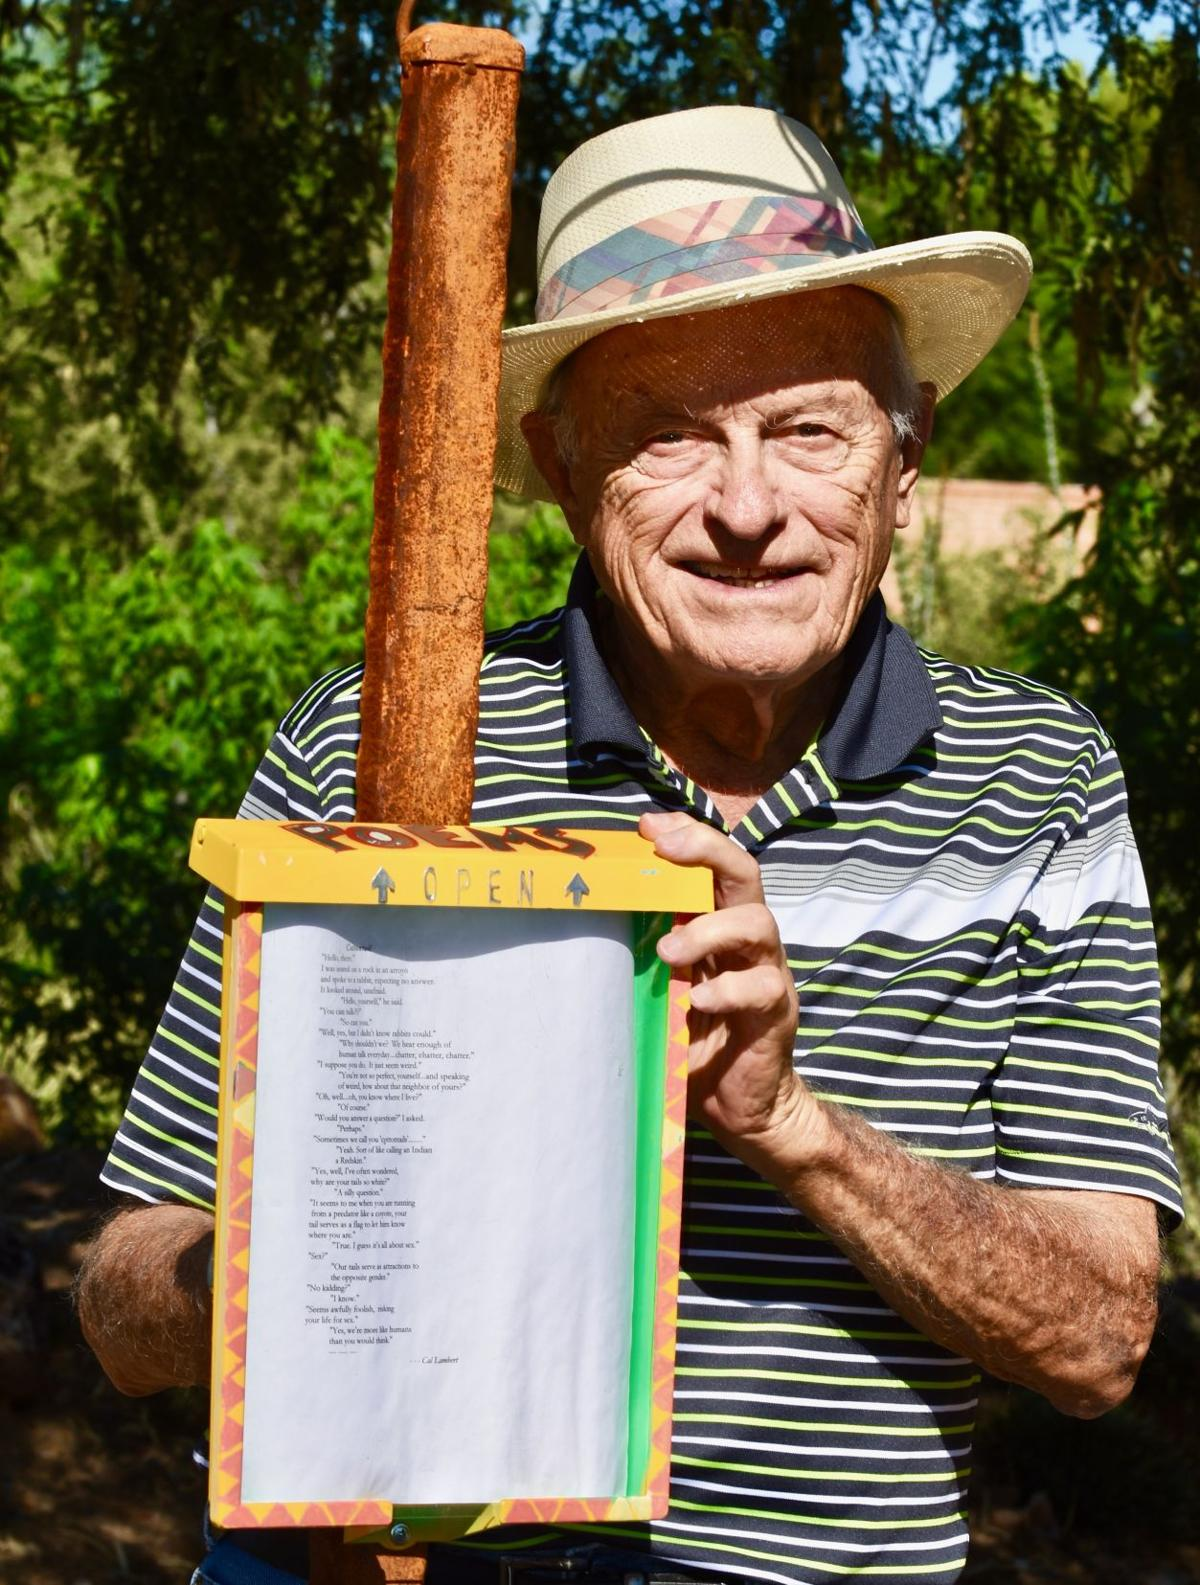 POEMS AMONGST THE PLANTS: Desert Meadows Park welcomes PoeTrail